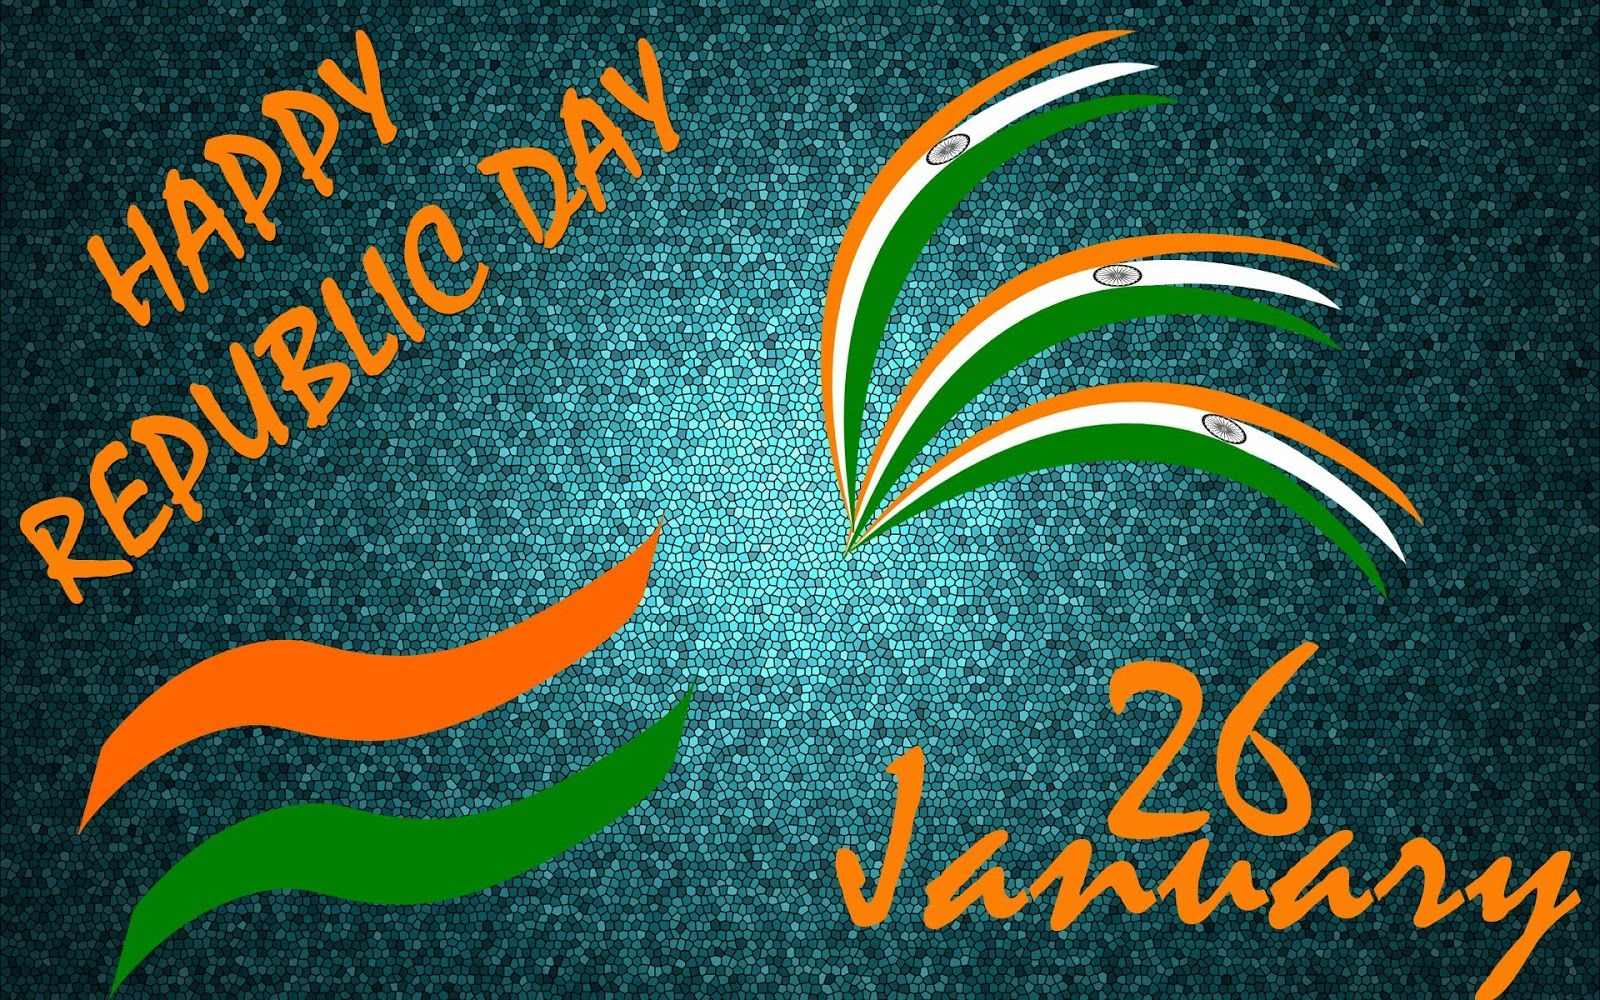 Happy Republic Day January 26 2021 Images Pictures And Hd Wallpapers Republic Day Message Republic Day India Flag Happy republic day january 26 2021